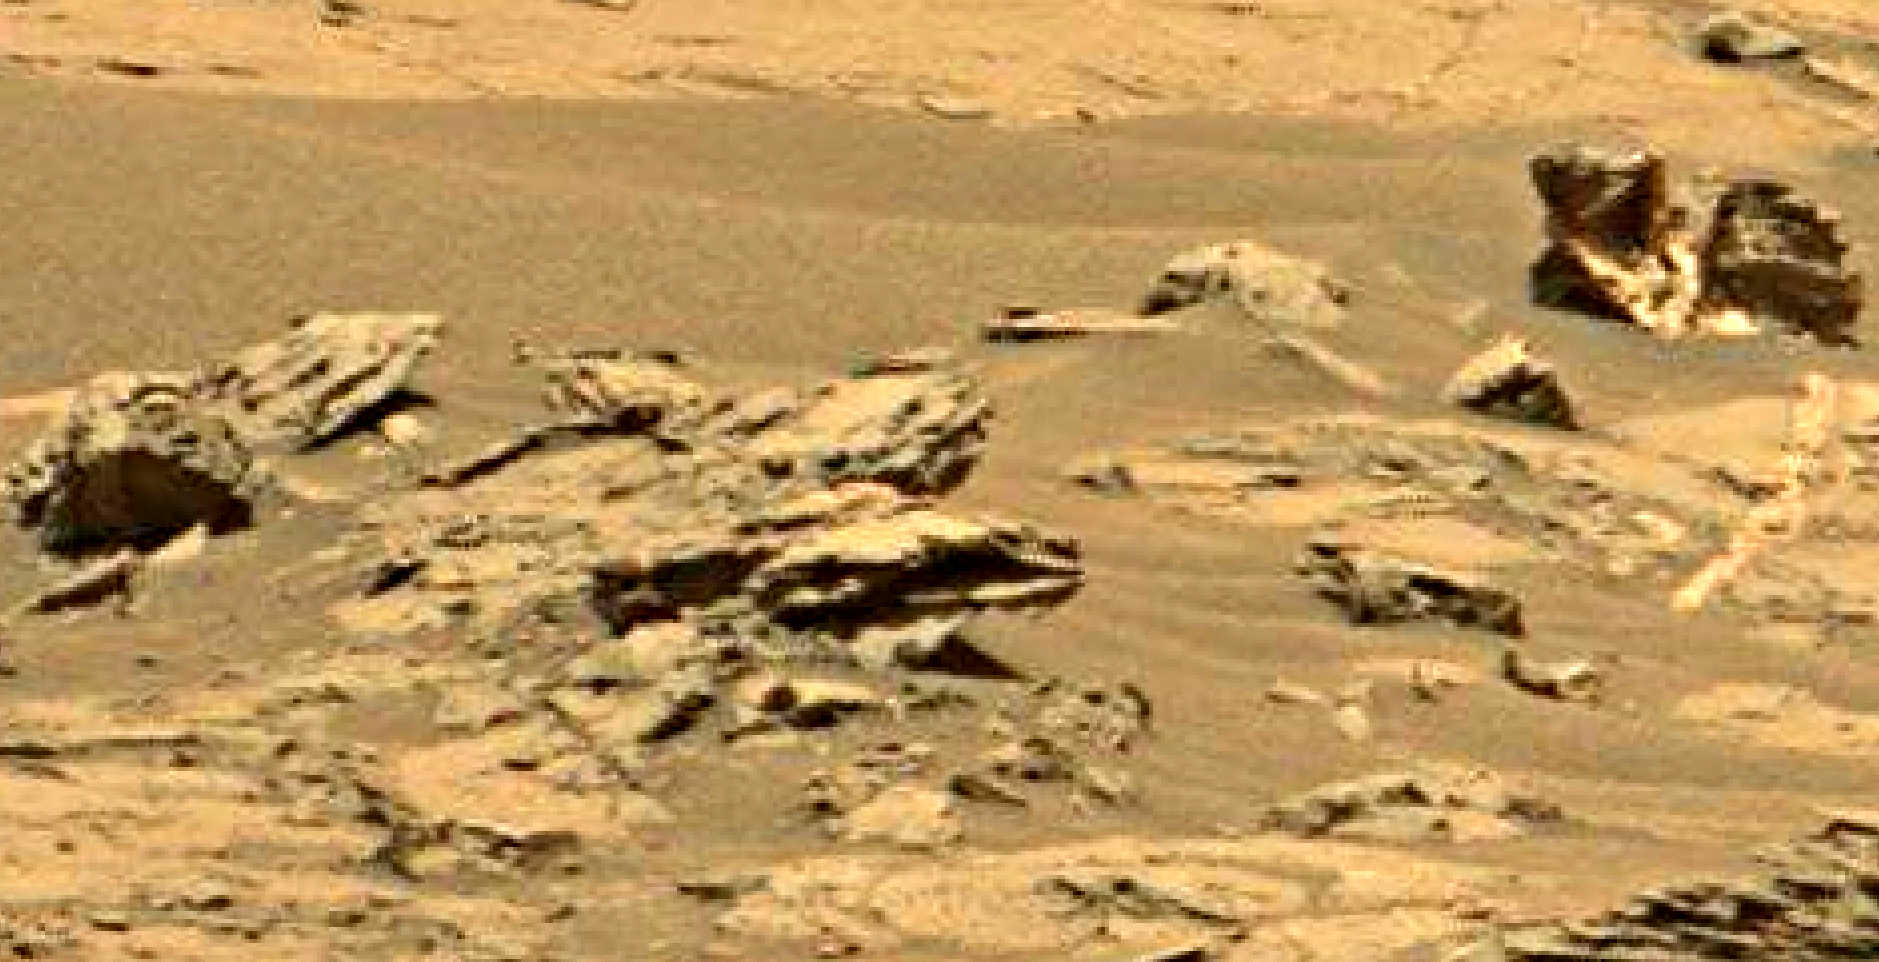 mars sol 1353 anomaly-artifacts 10 was life on mars